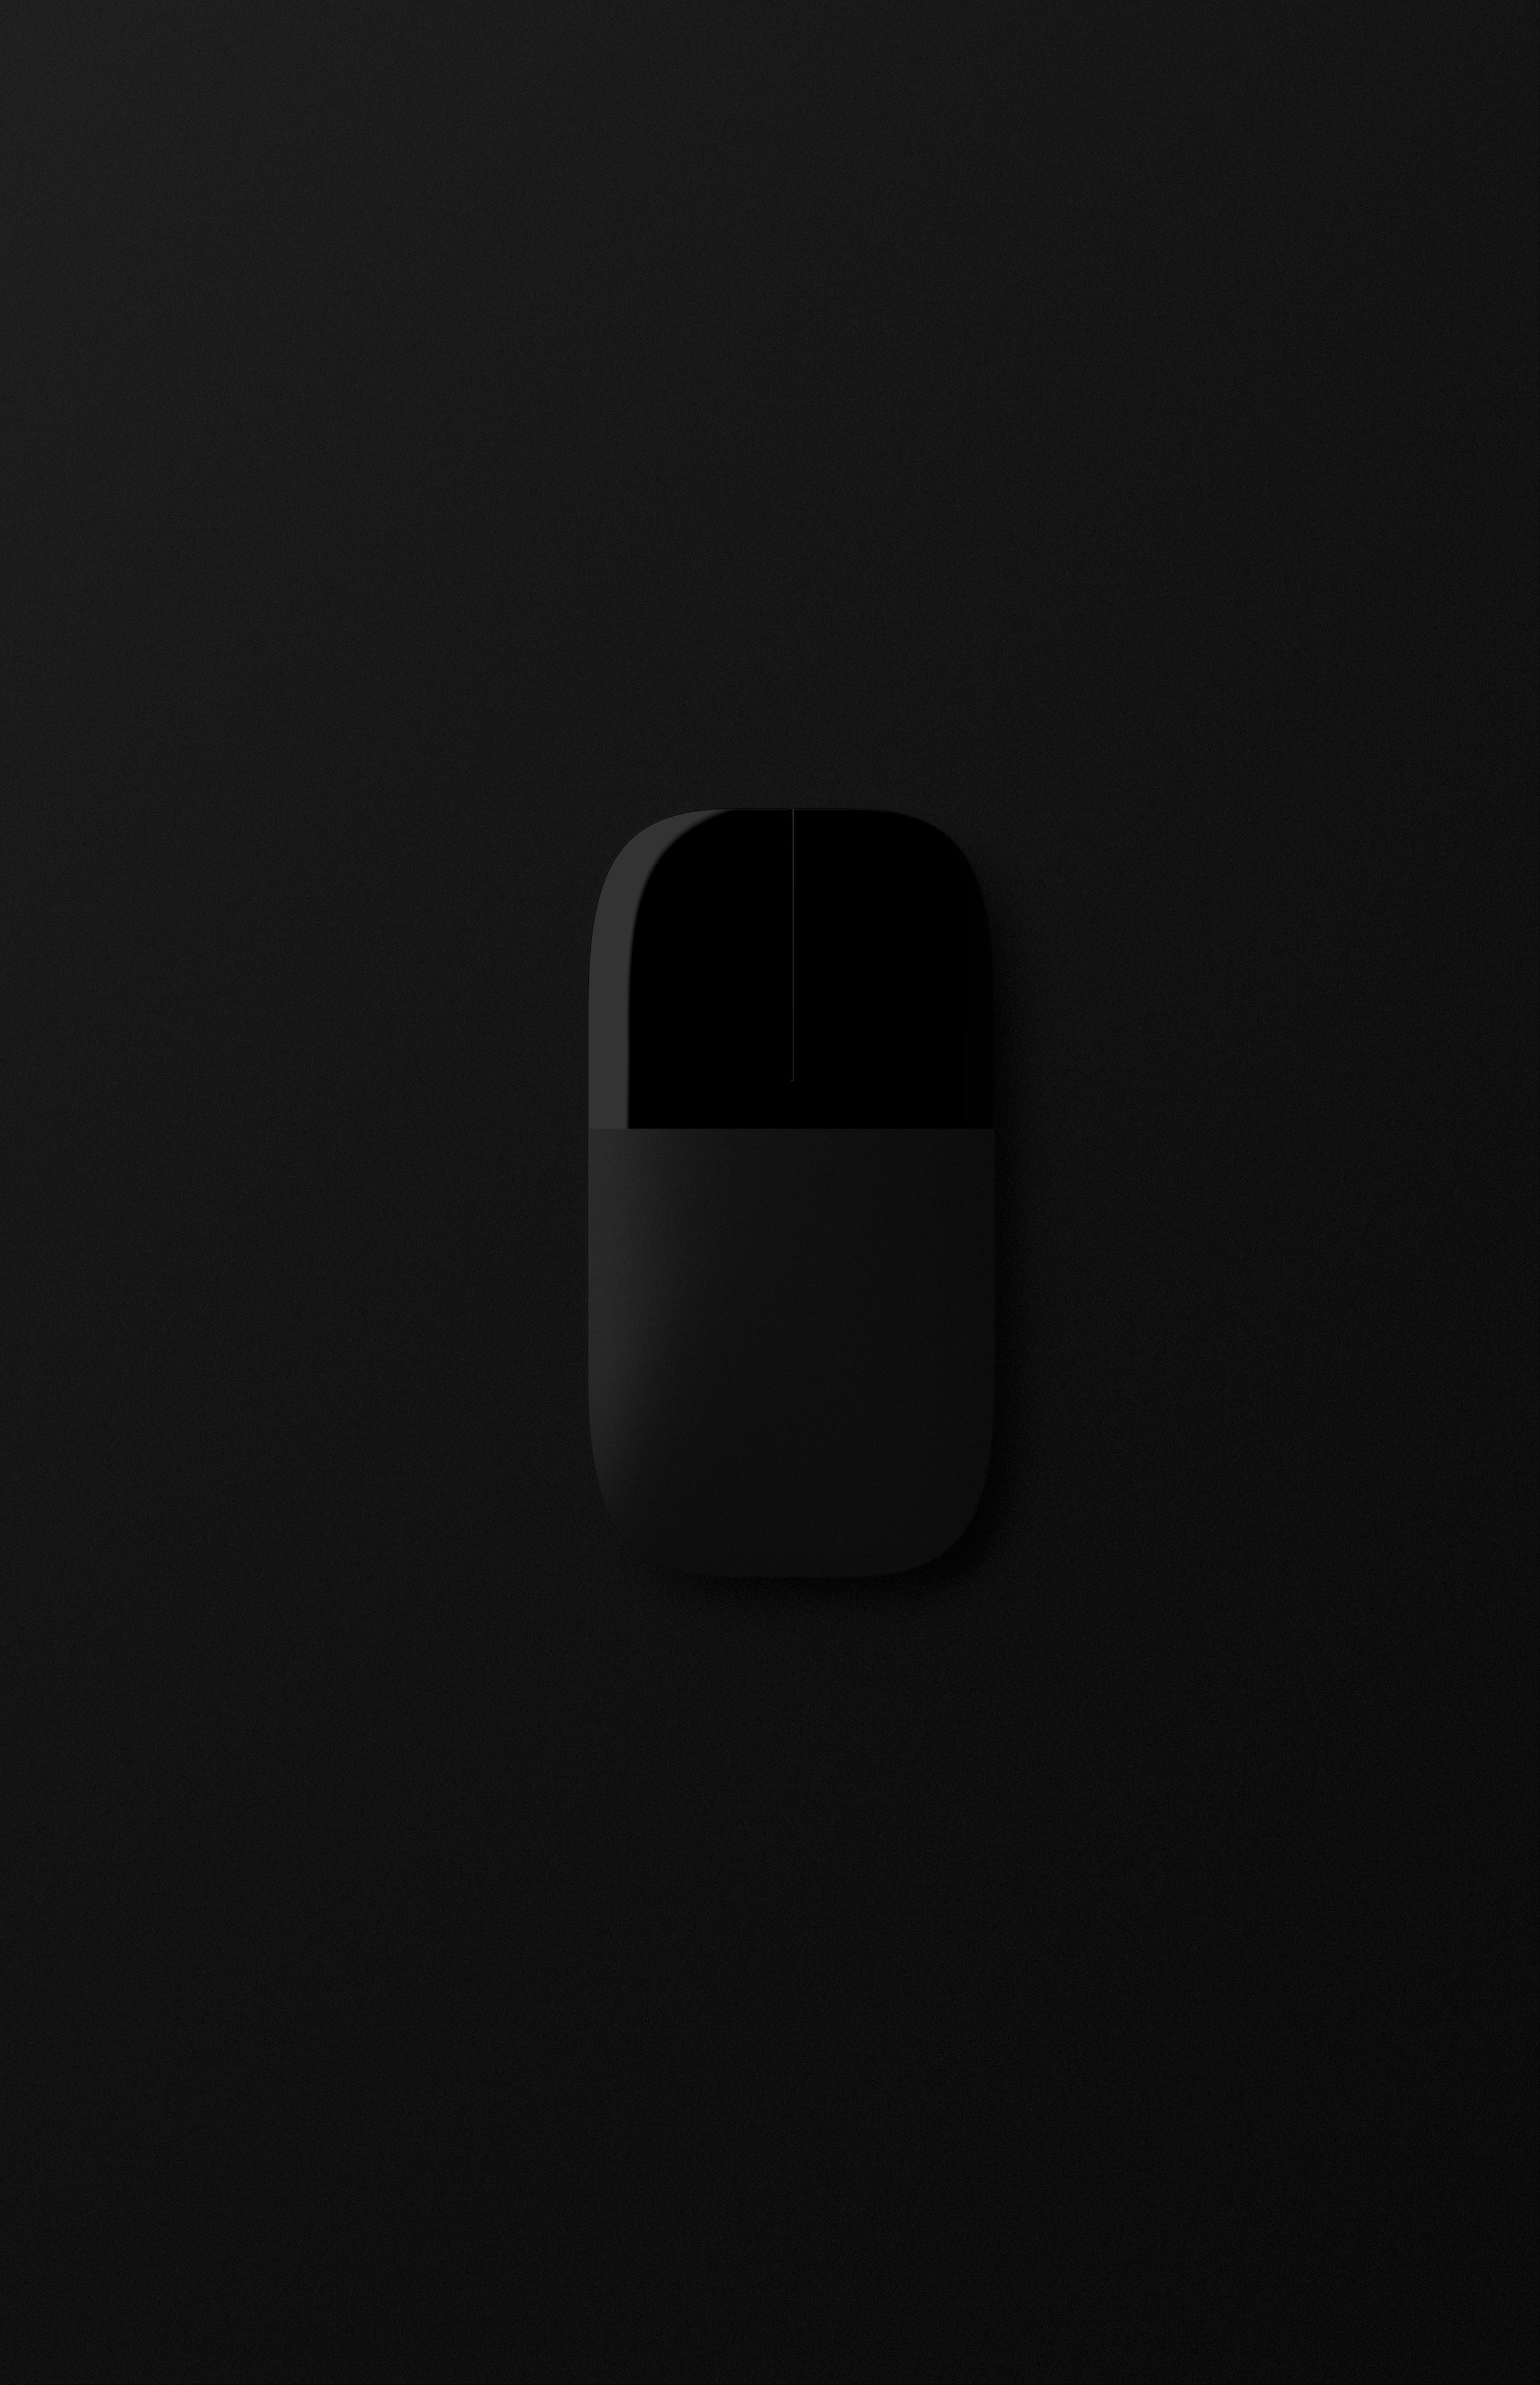 mouse.top.jpg